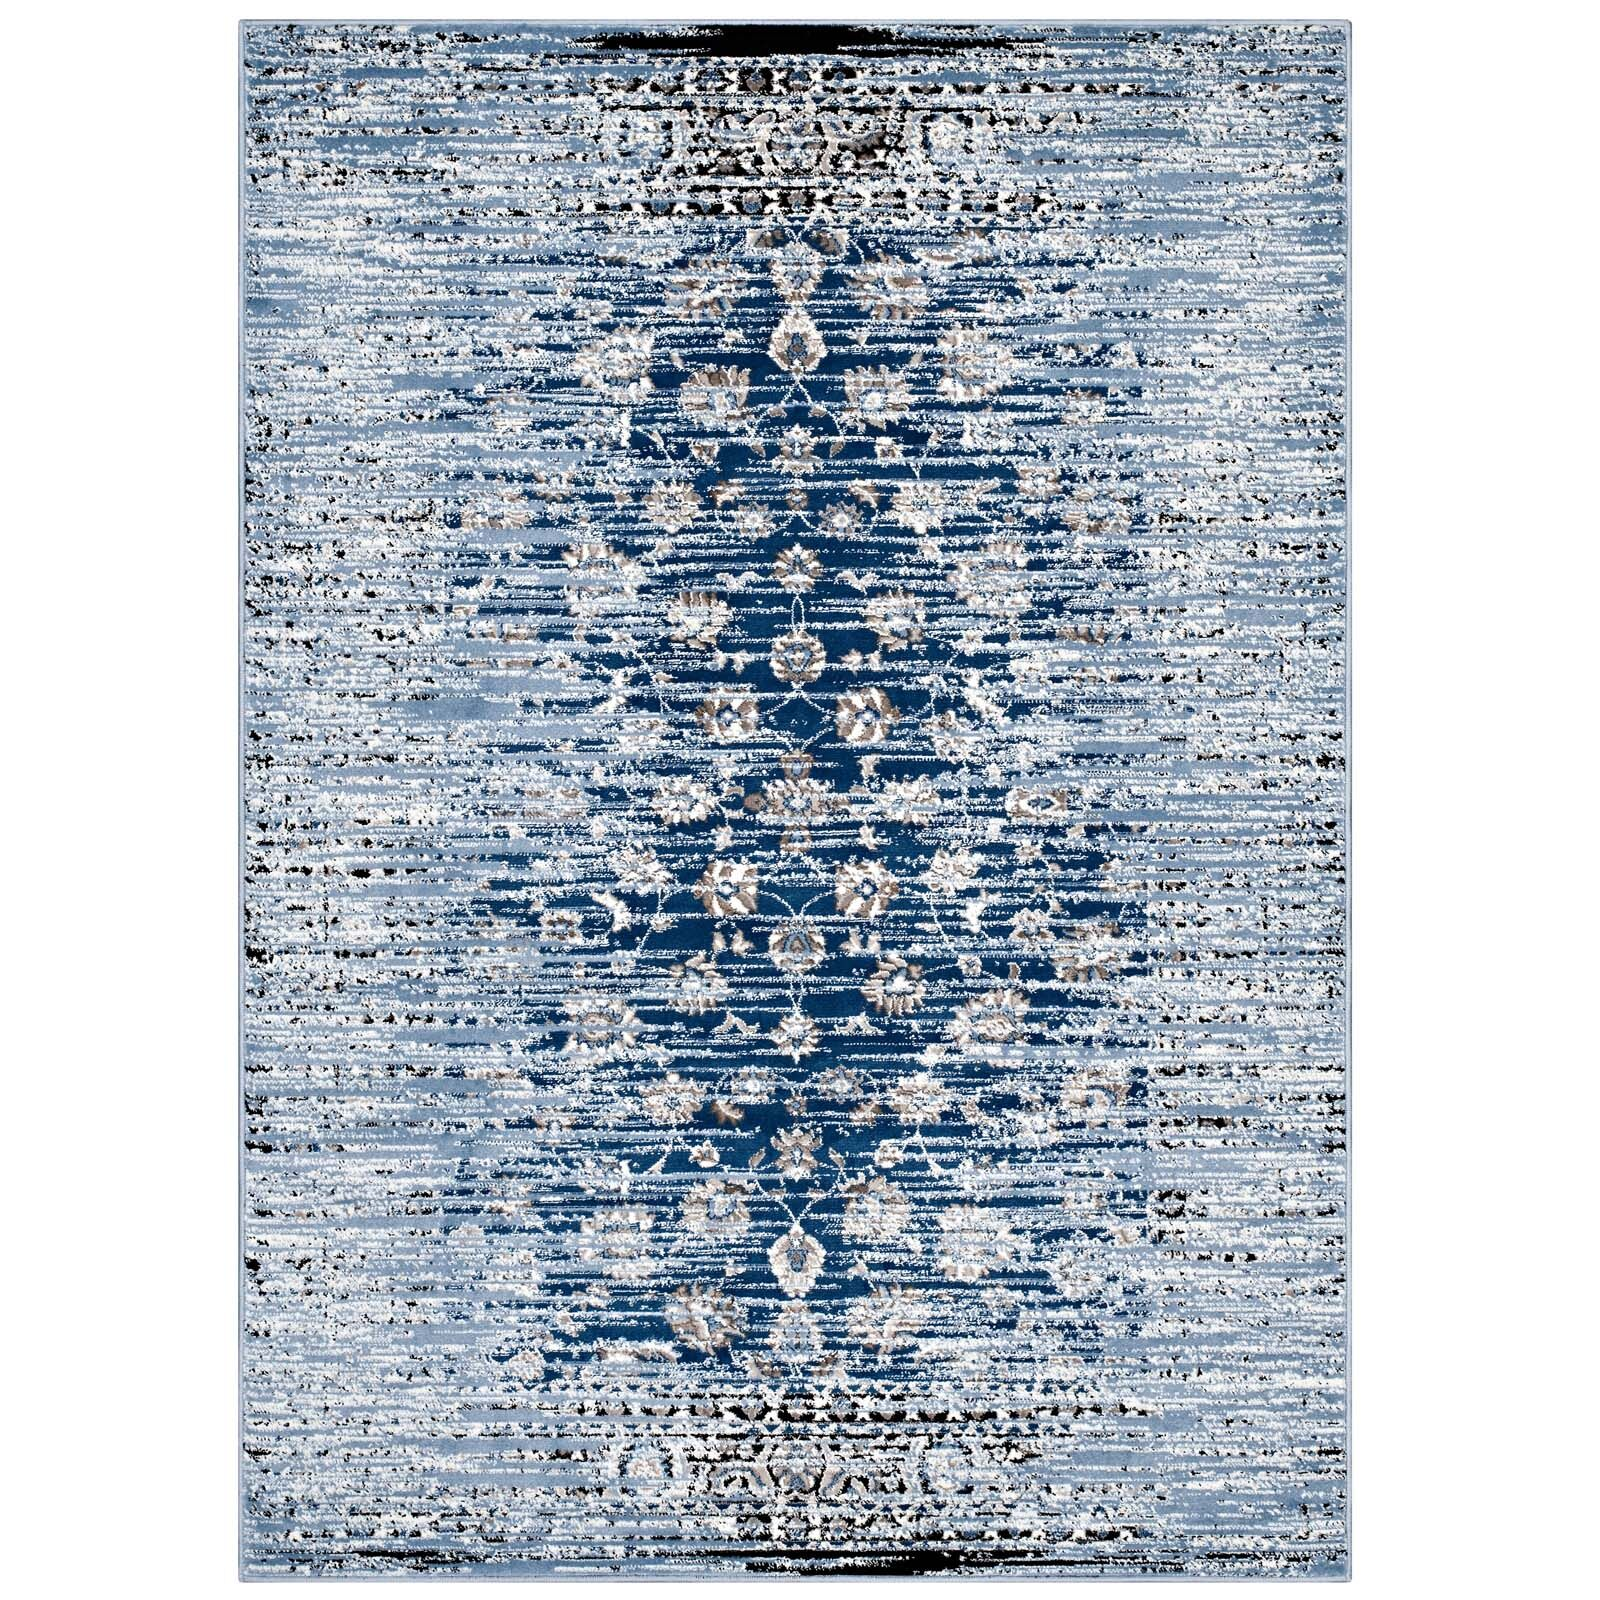 Crader Distressed Floral Lattice Contemporary Morrocan Blue Area Rug Rug Size: 5' x 8'